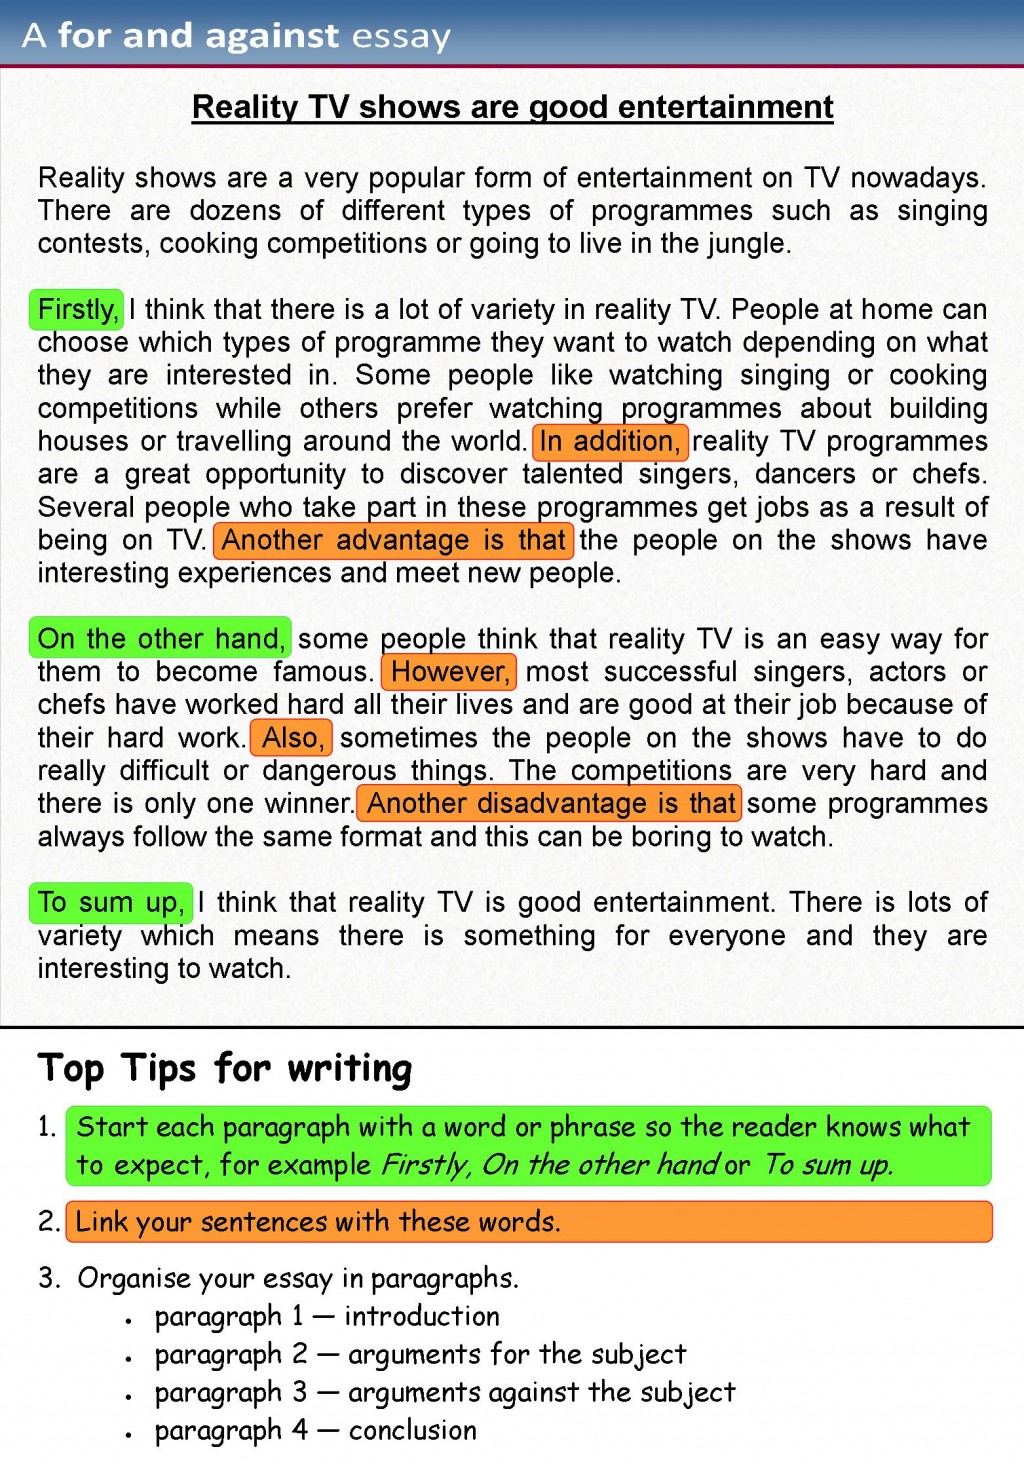 019 Essay Example How To Write And For Against 1 Unique An Conclusion University Level Outline College Placement Test Large